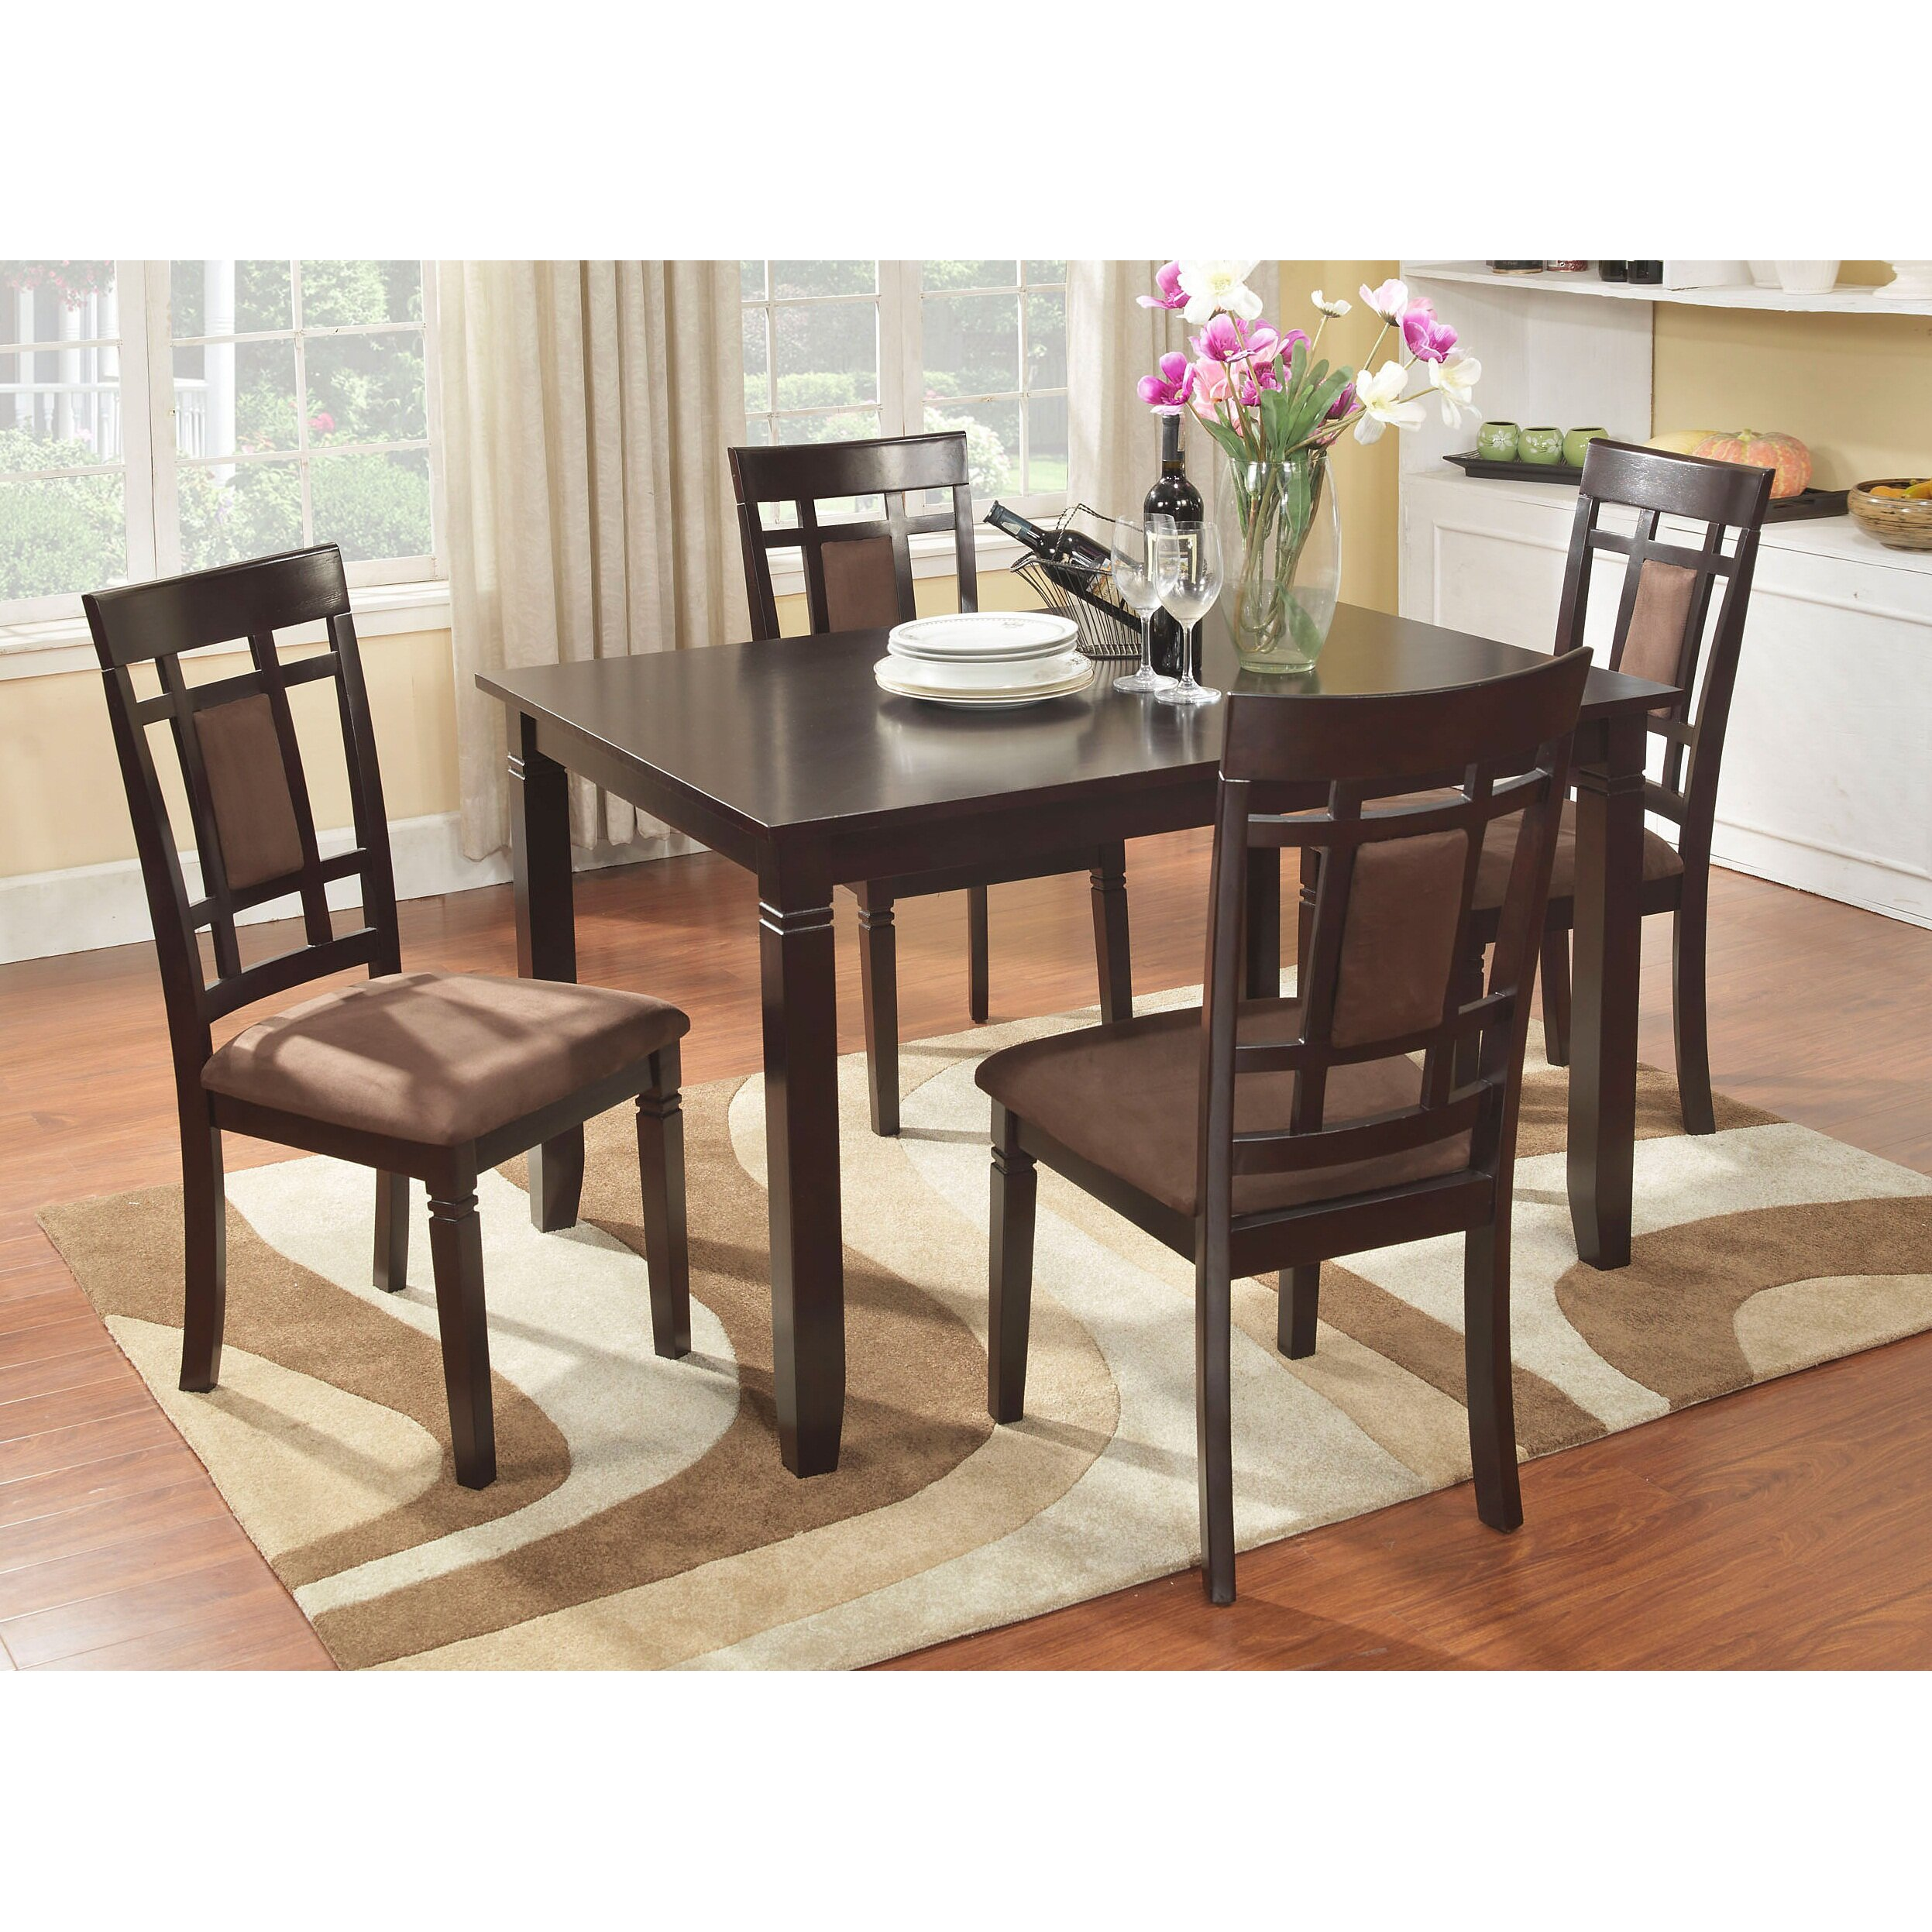 Roundhill Furniture Inworld 5 Piece Dining Set & Reviews